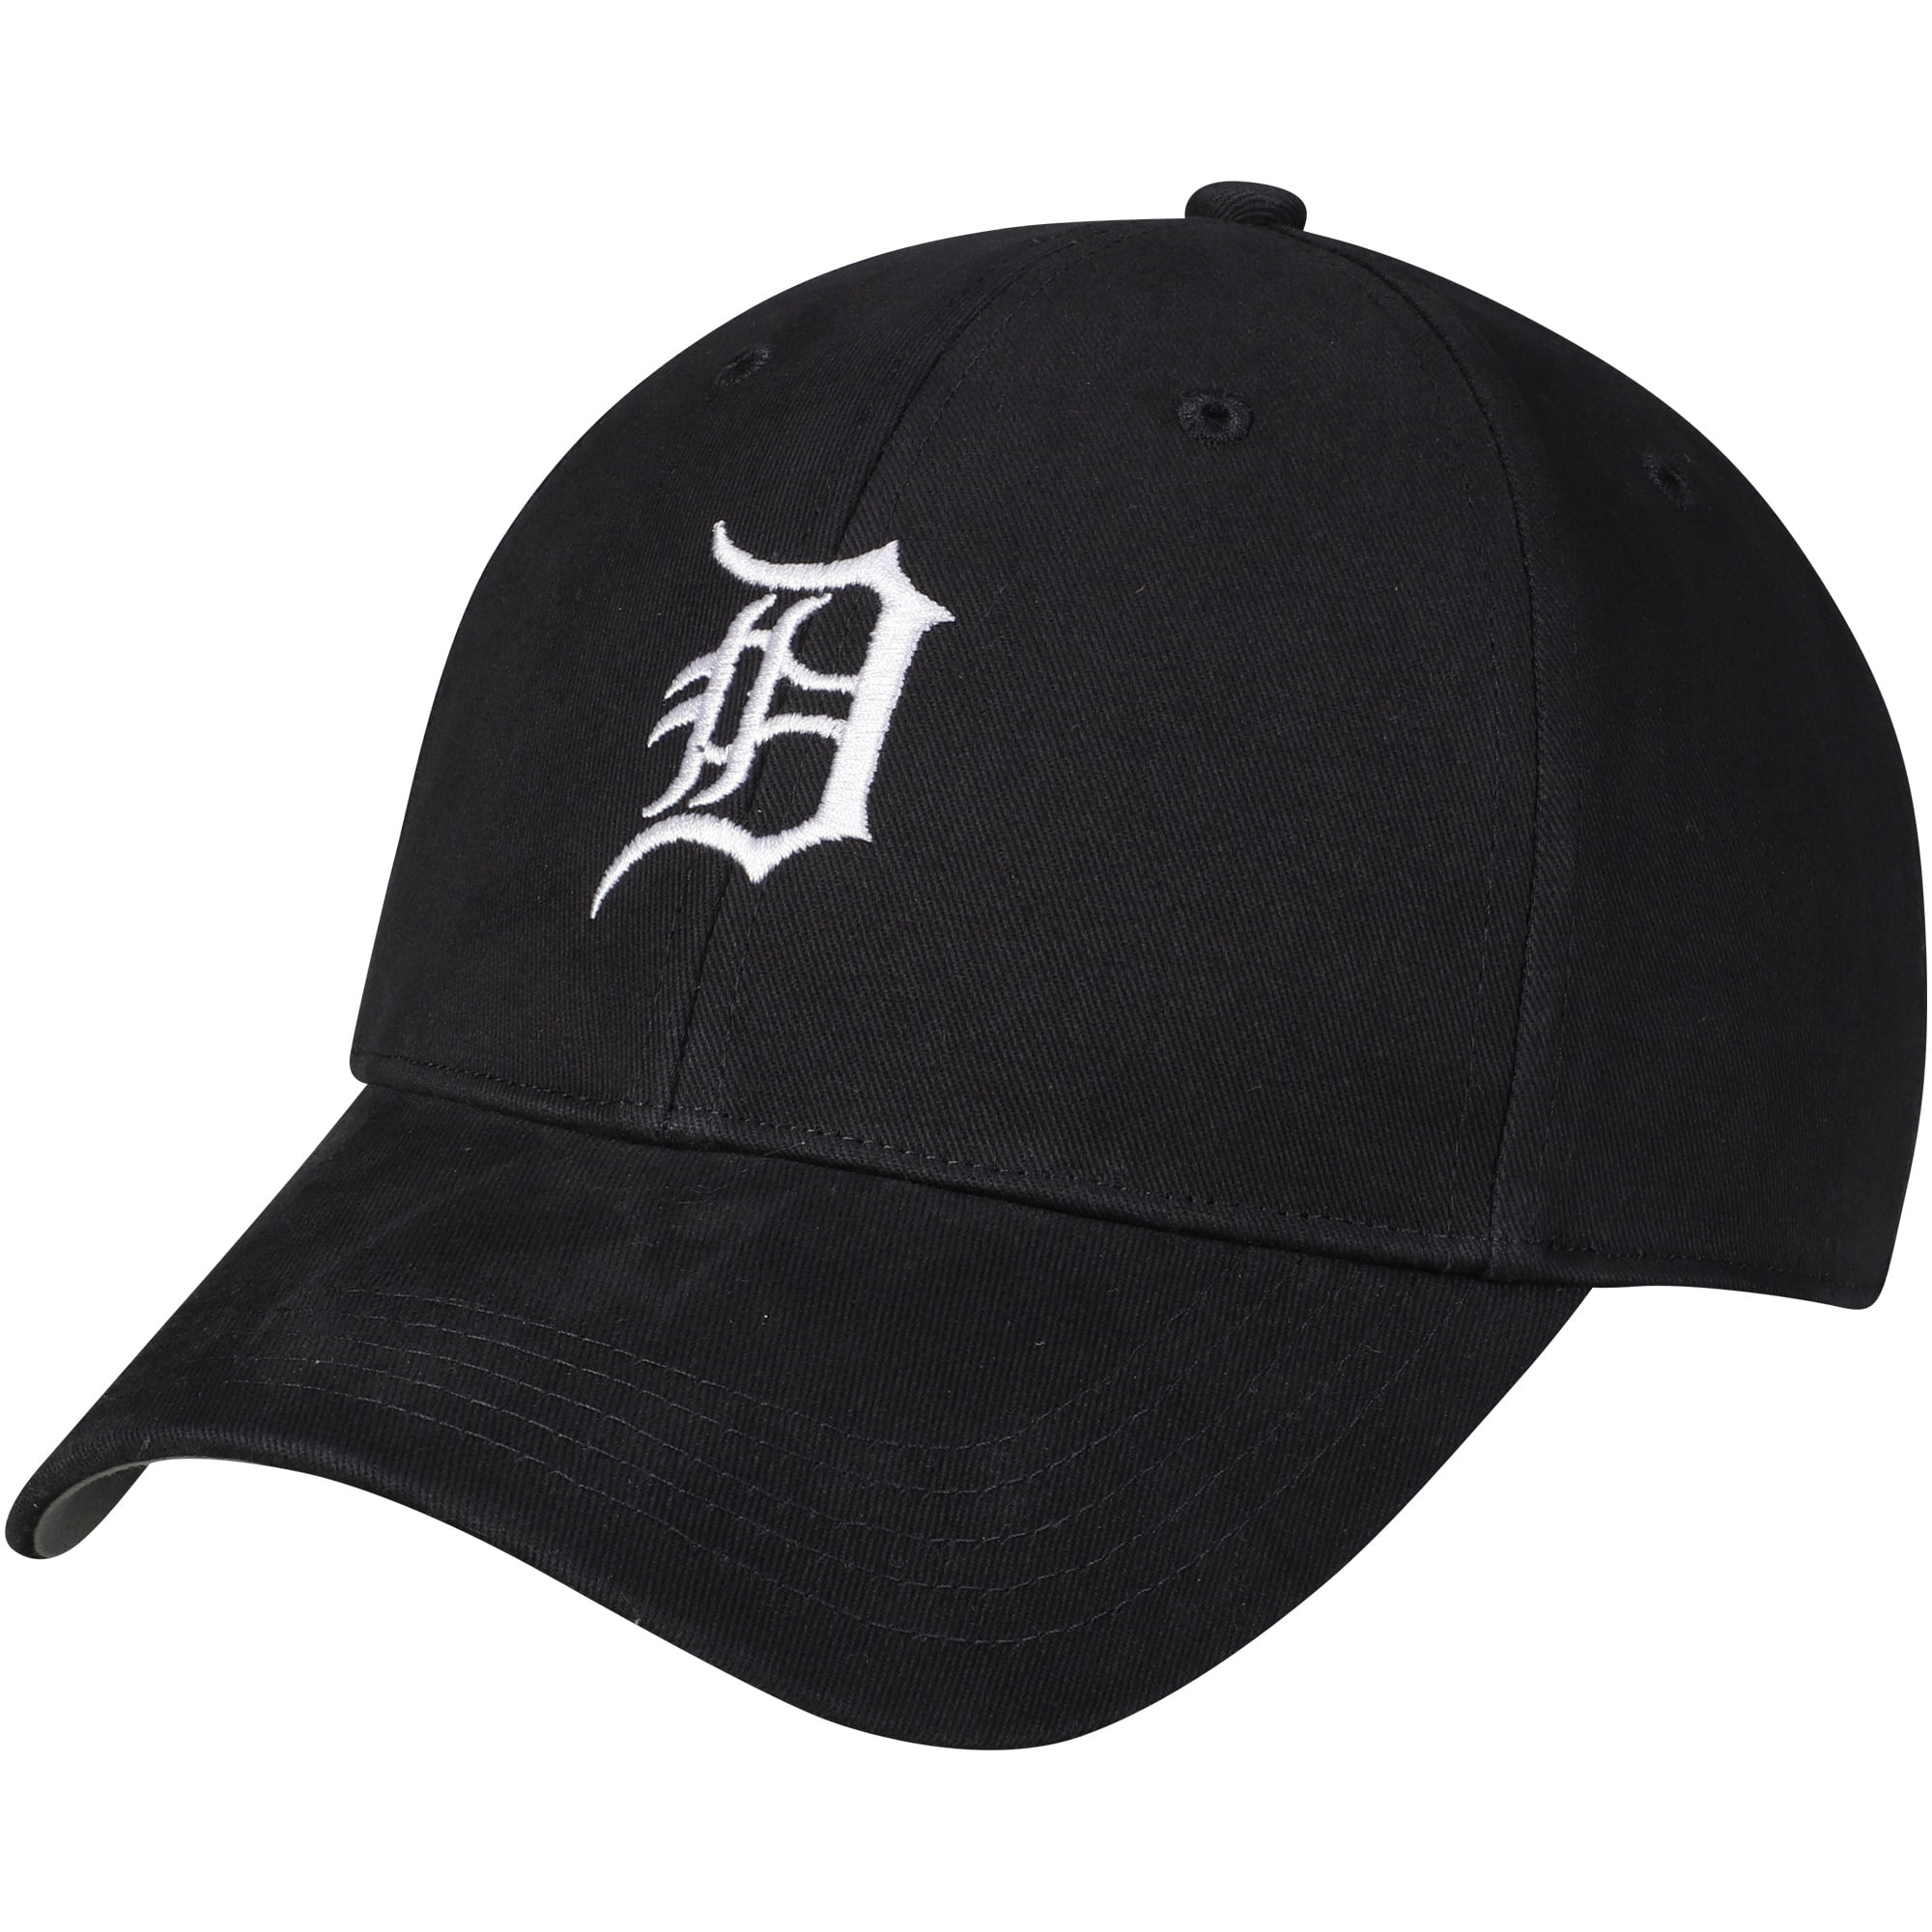 d07a38e4a60 Detroit Tigers Fan Favorite Youth Basic Adjustable Hat - Navy - OSFA -  Walmart.com